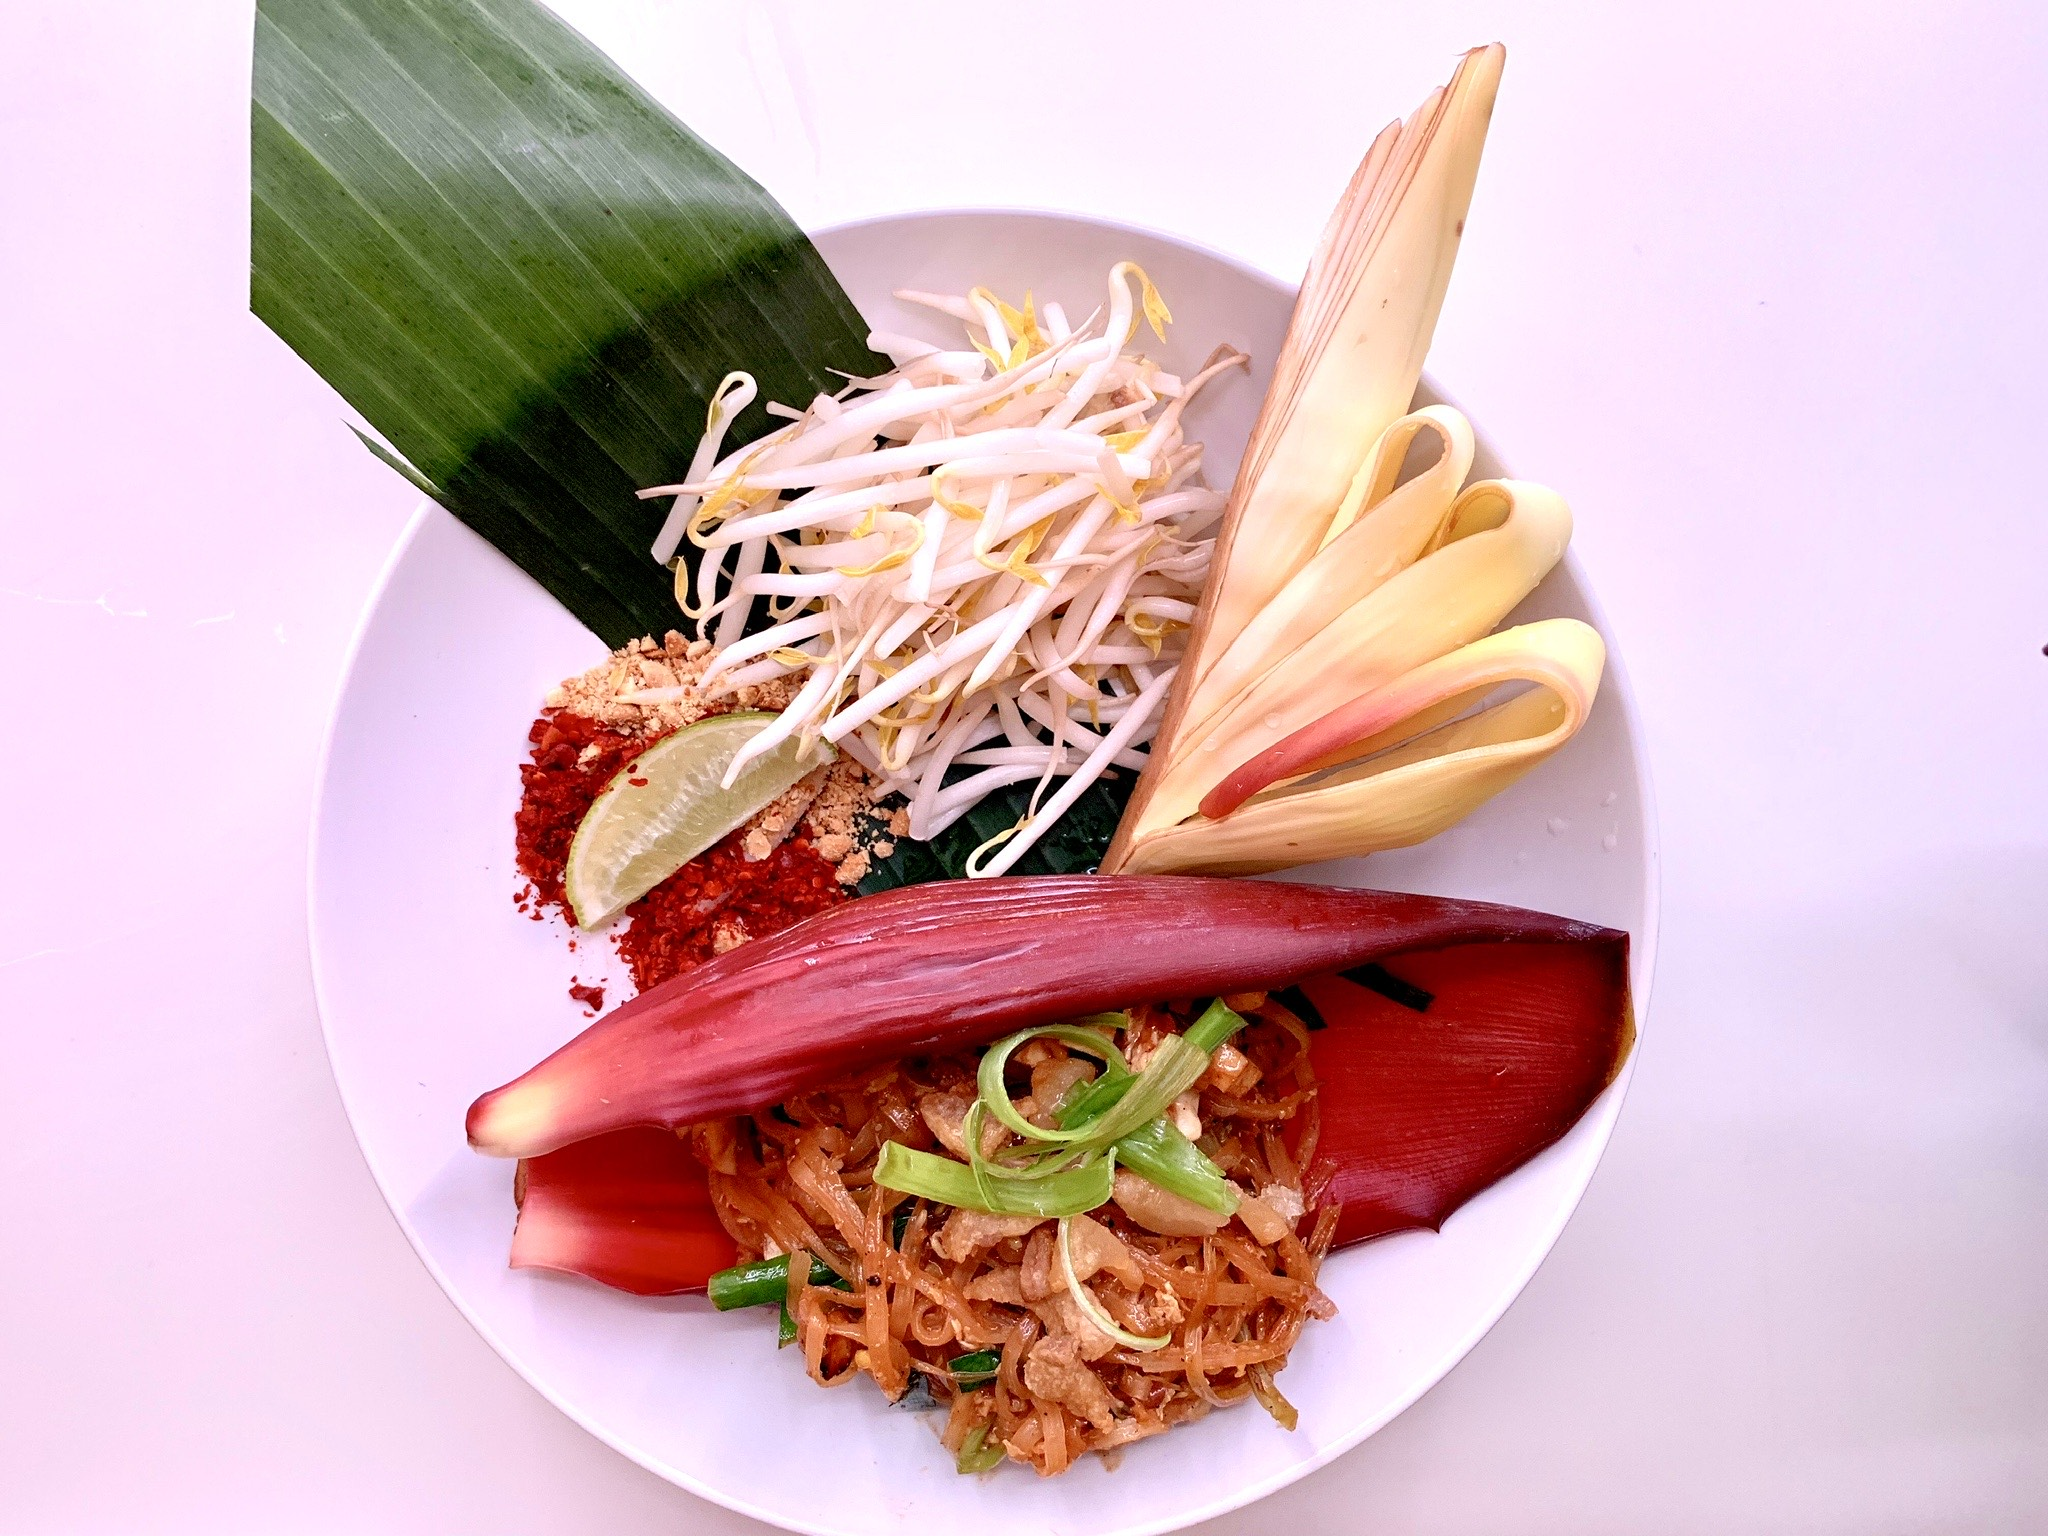 Overhead view of a plate of pad thai